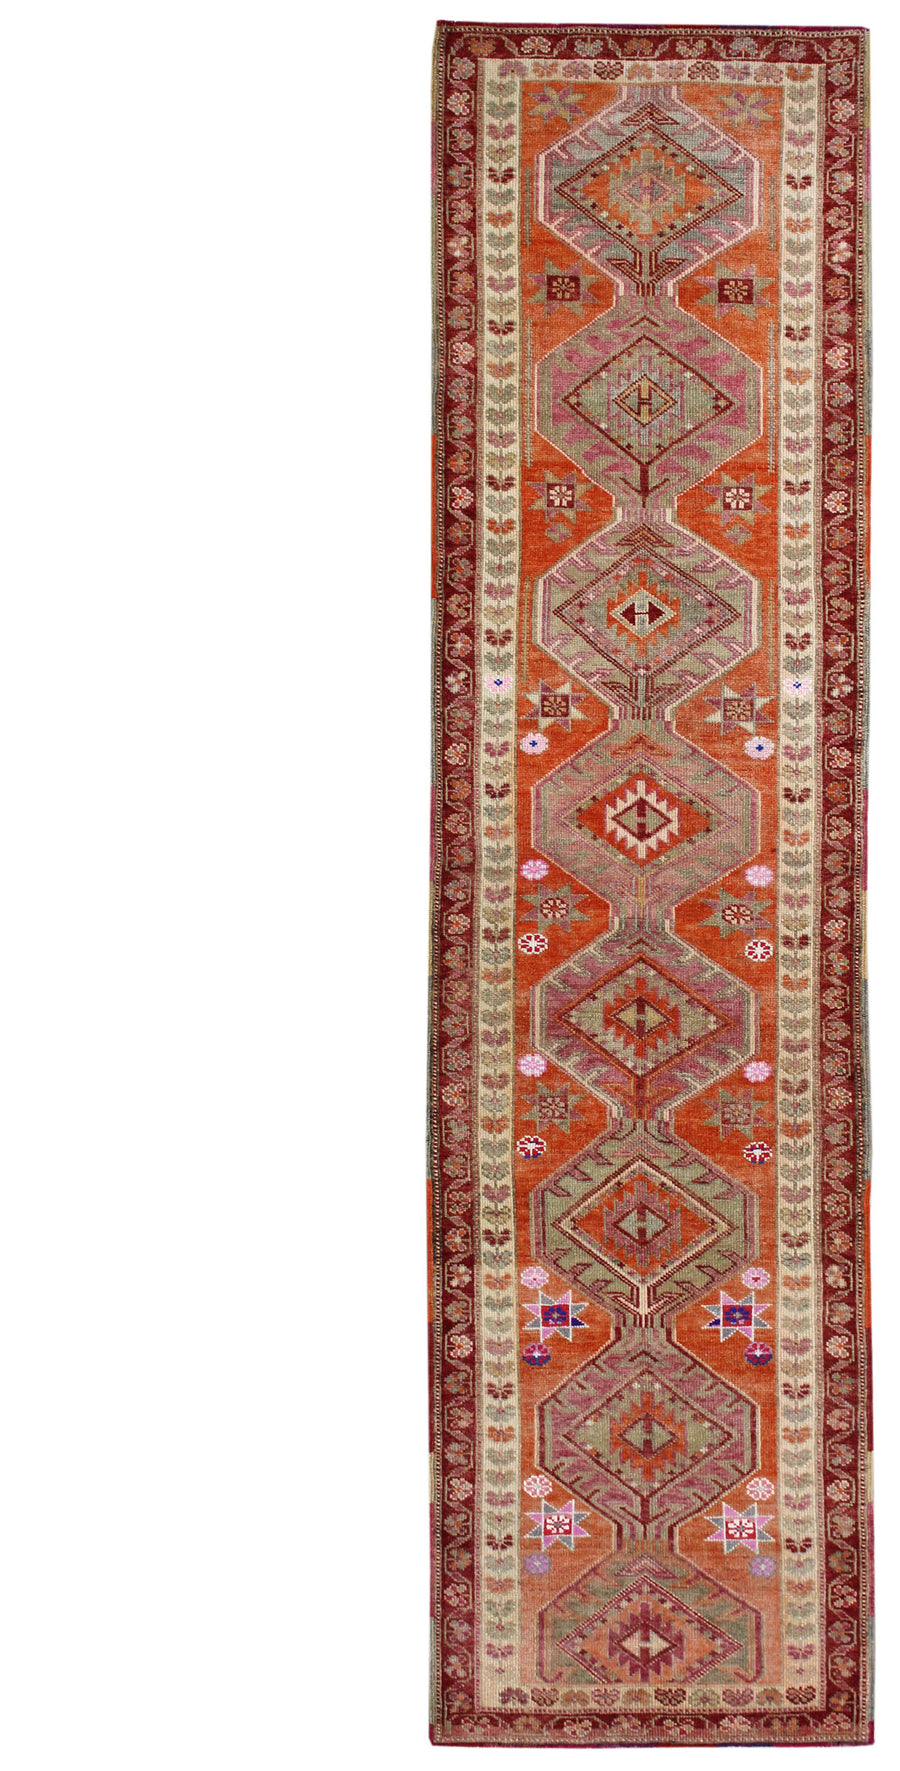 KURDISH HANDKNOTTED RUG, J54110